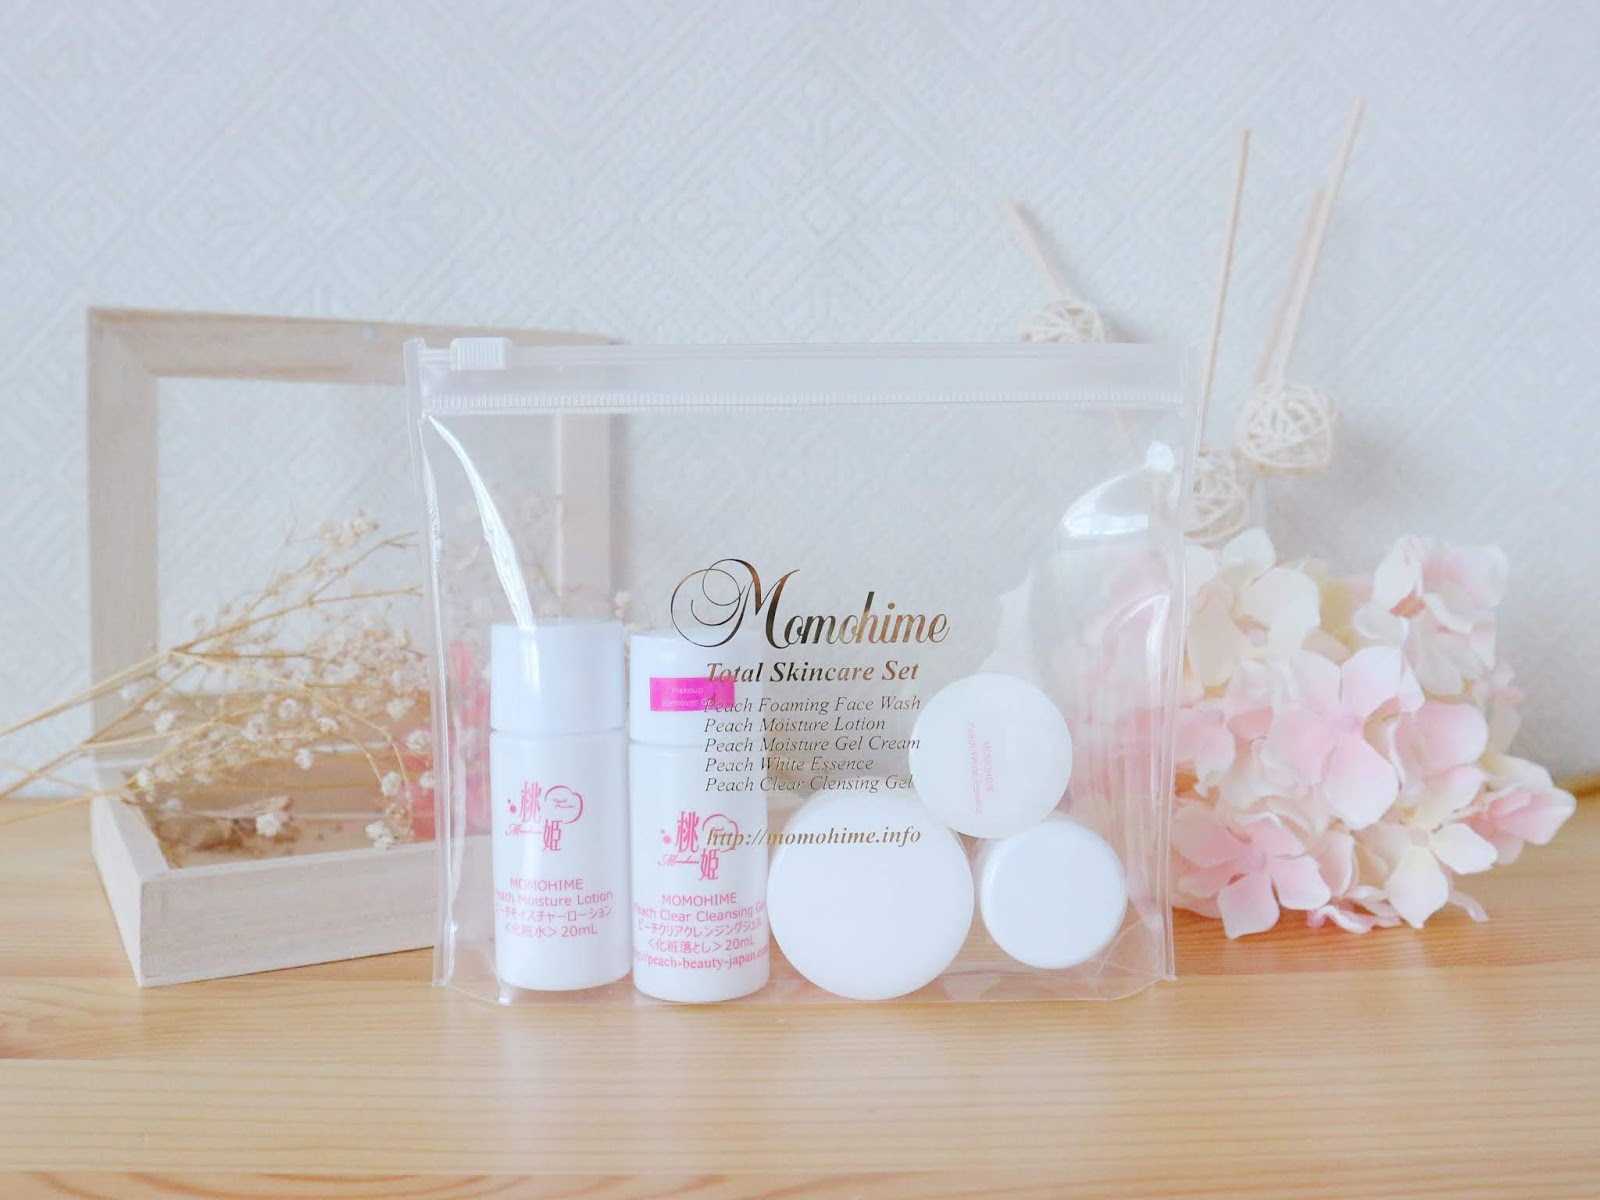 Momohime Skincare Travel Size Sets Now Available! / Welcome